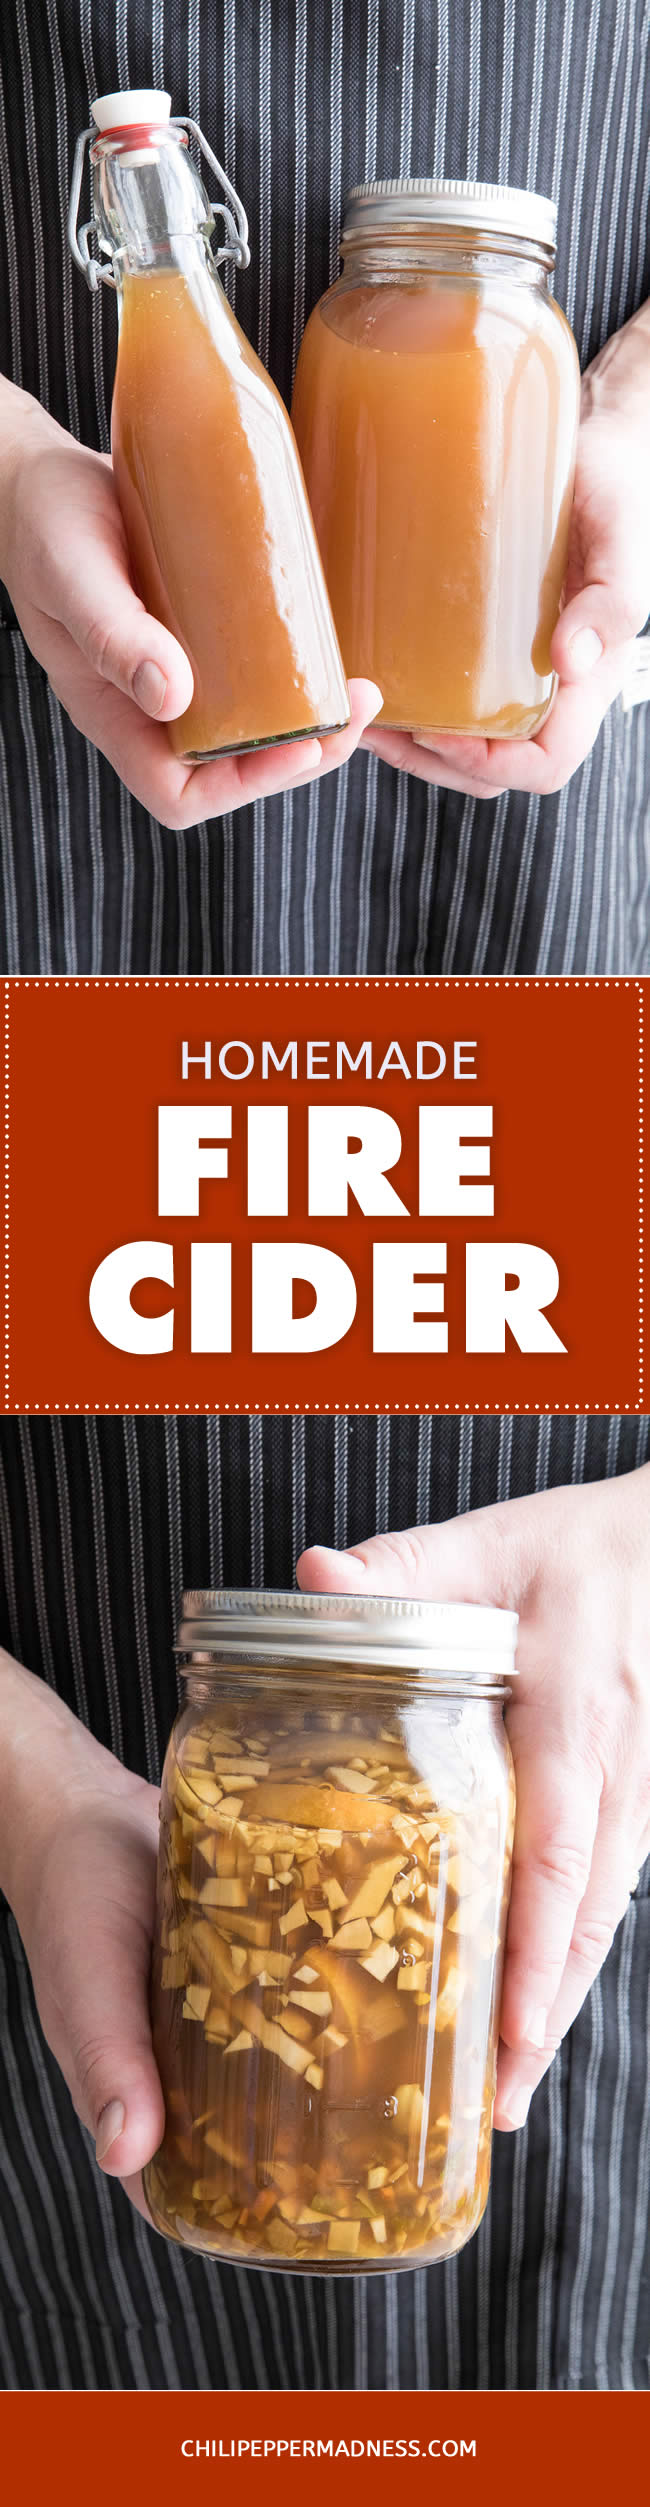 Homemade Fire Cider - Recipe